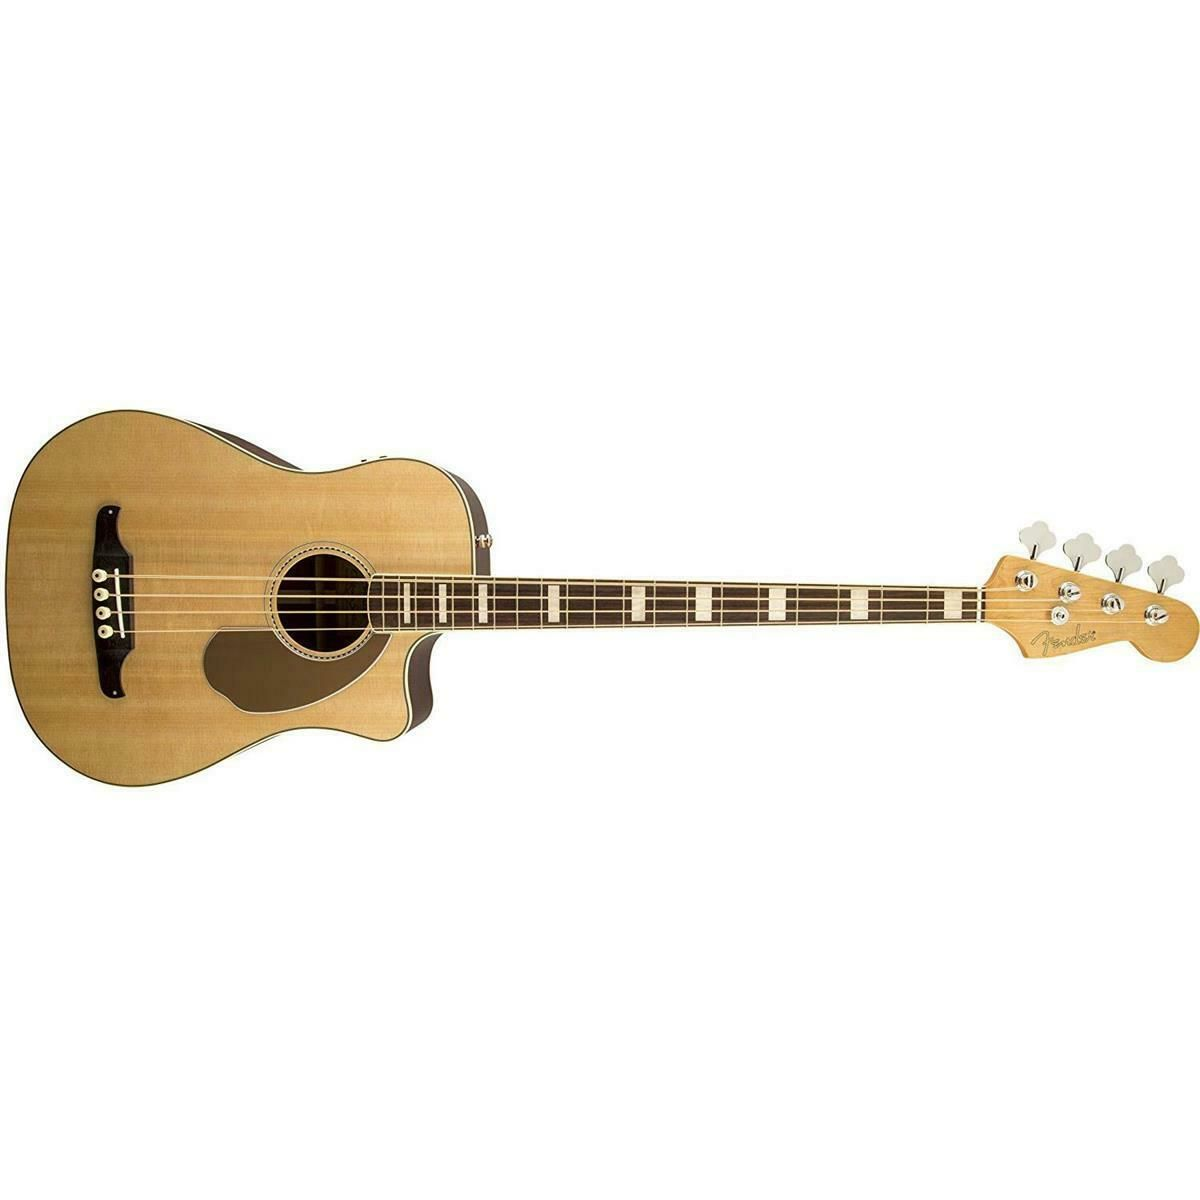 Fender Kingsman Bass Sce Dreadnought Acoustic Electric Bass Guitar With Case Price 589 99 Guitars Guitar Electric Guitar For Sale Acoustic Electric